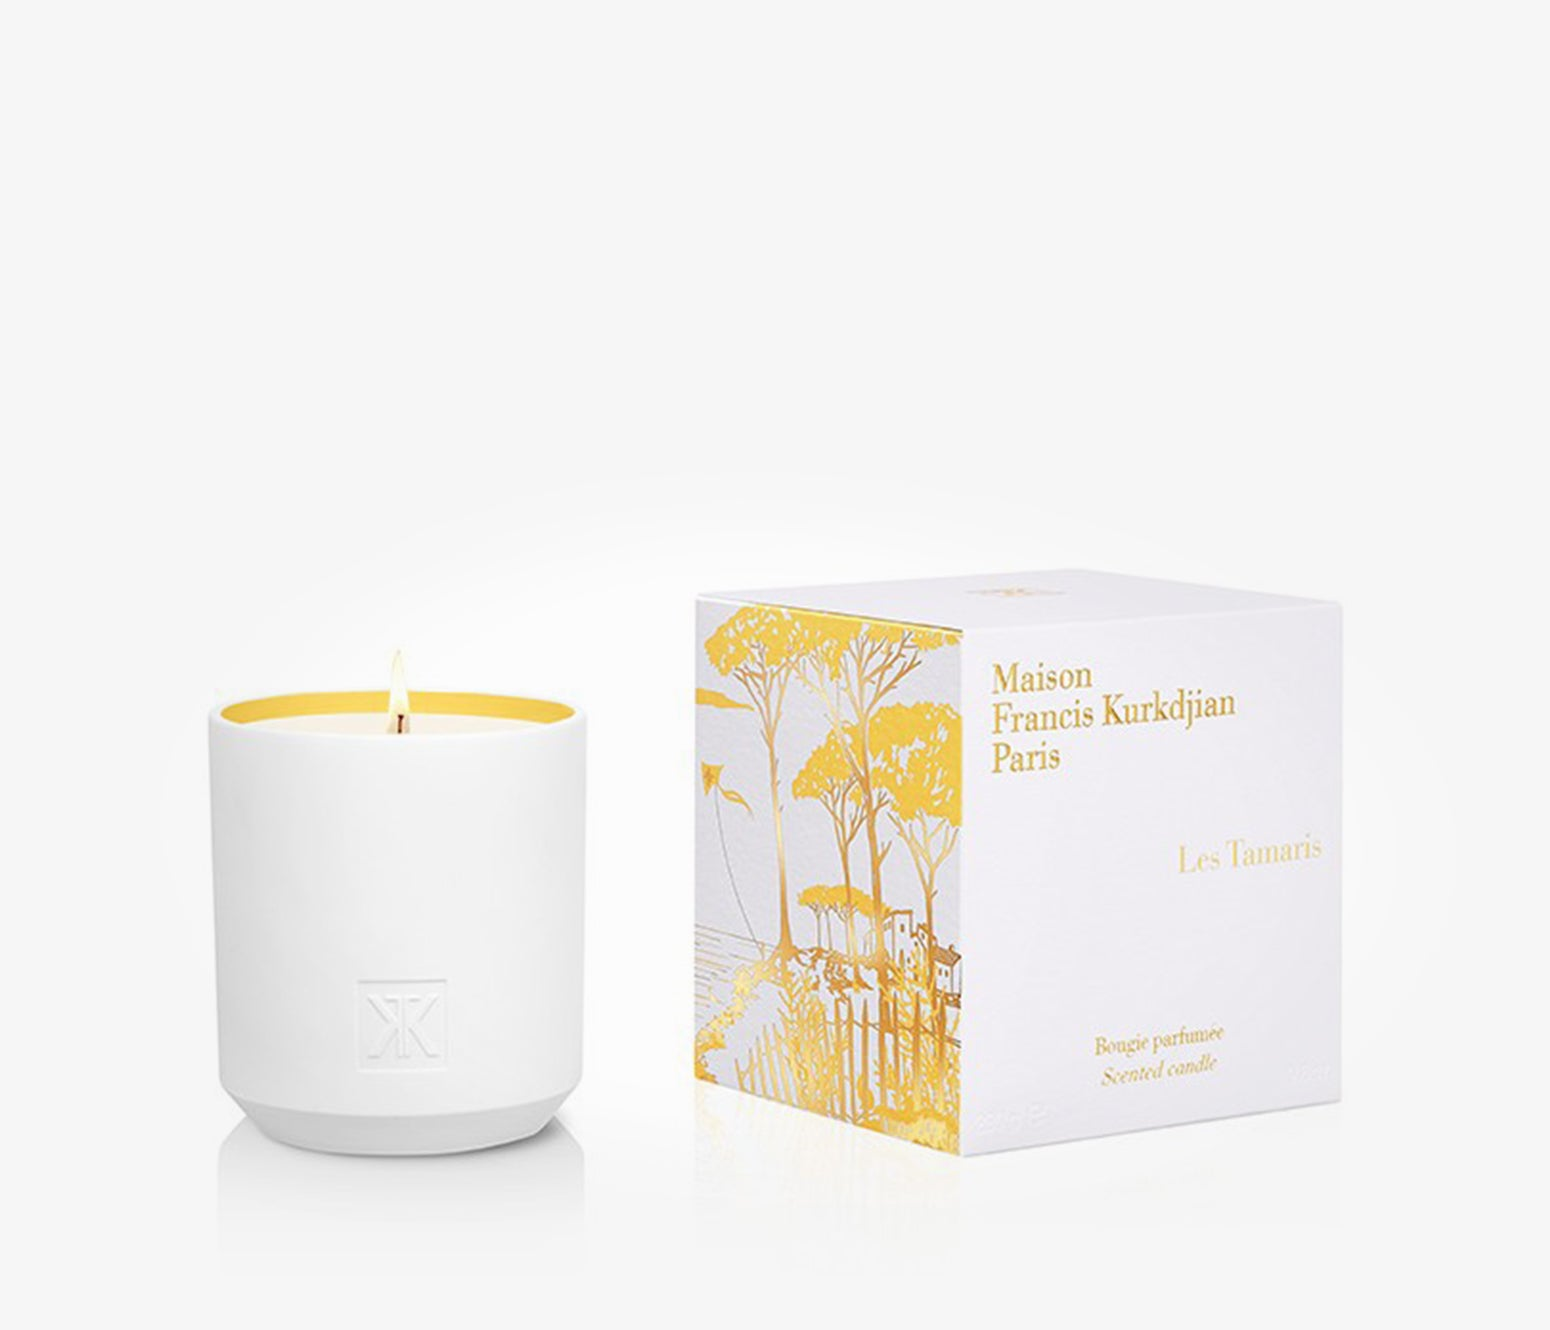 Les Tamaris Candle